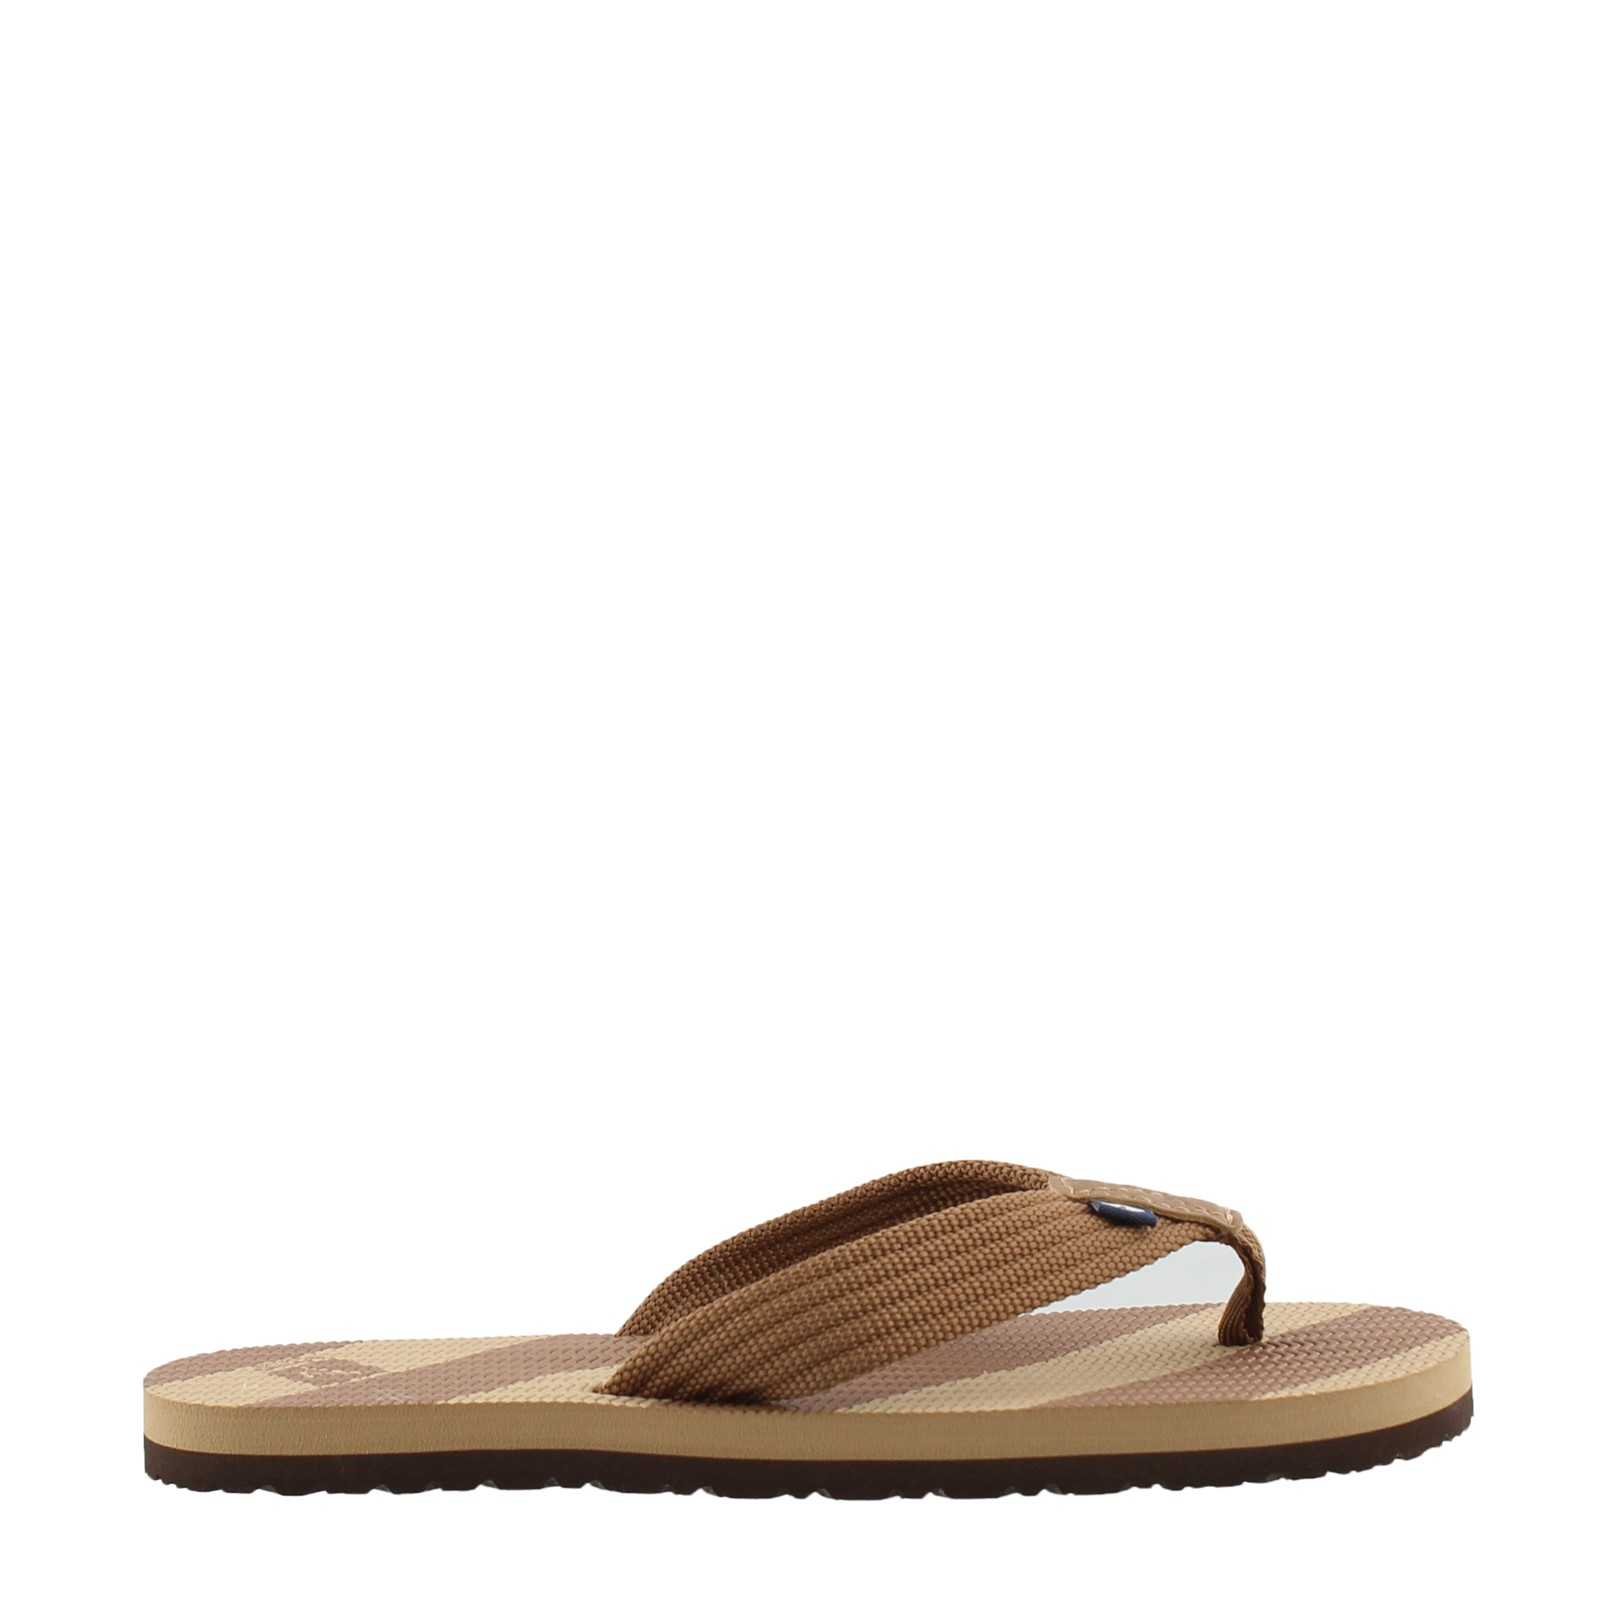 Boy's Sperry, Calypso Thong Sandal - Little Kid